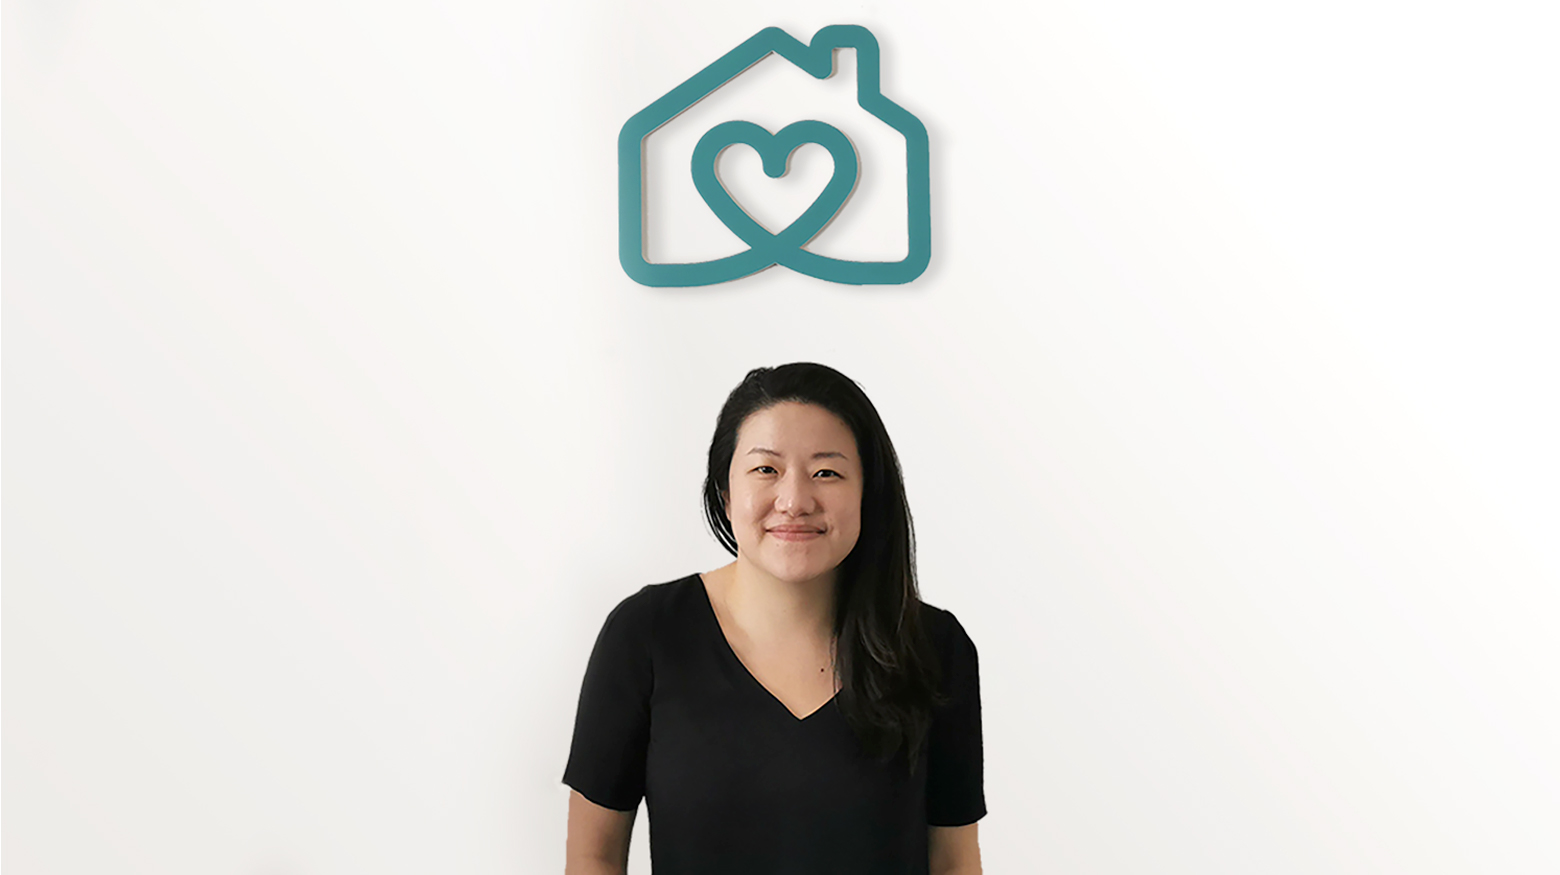 Technopreneur Gillian Tee uses her background in technology to build Homage, an app to get expert home care by expert local caregivers, nurses, rehabilitation therapists and medical doctors.